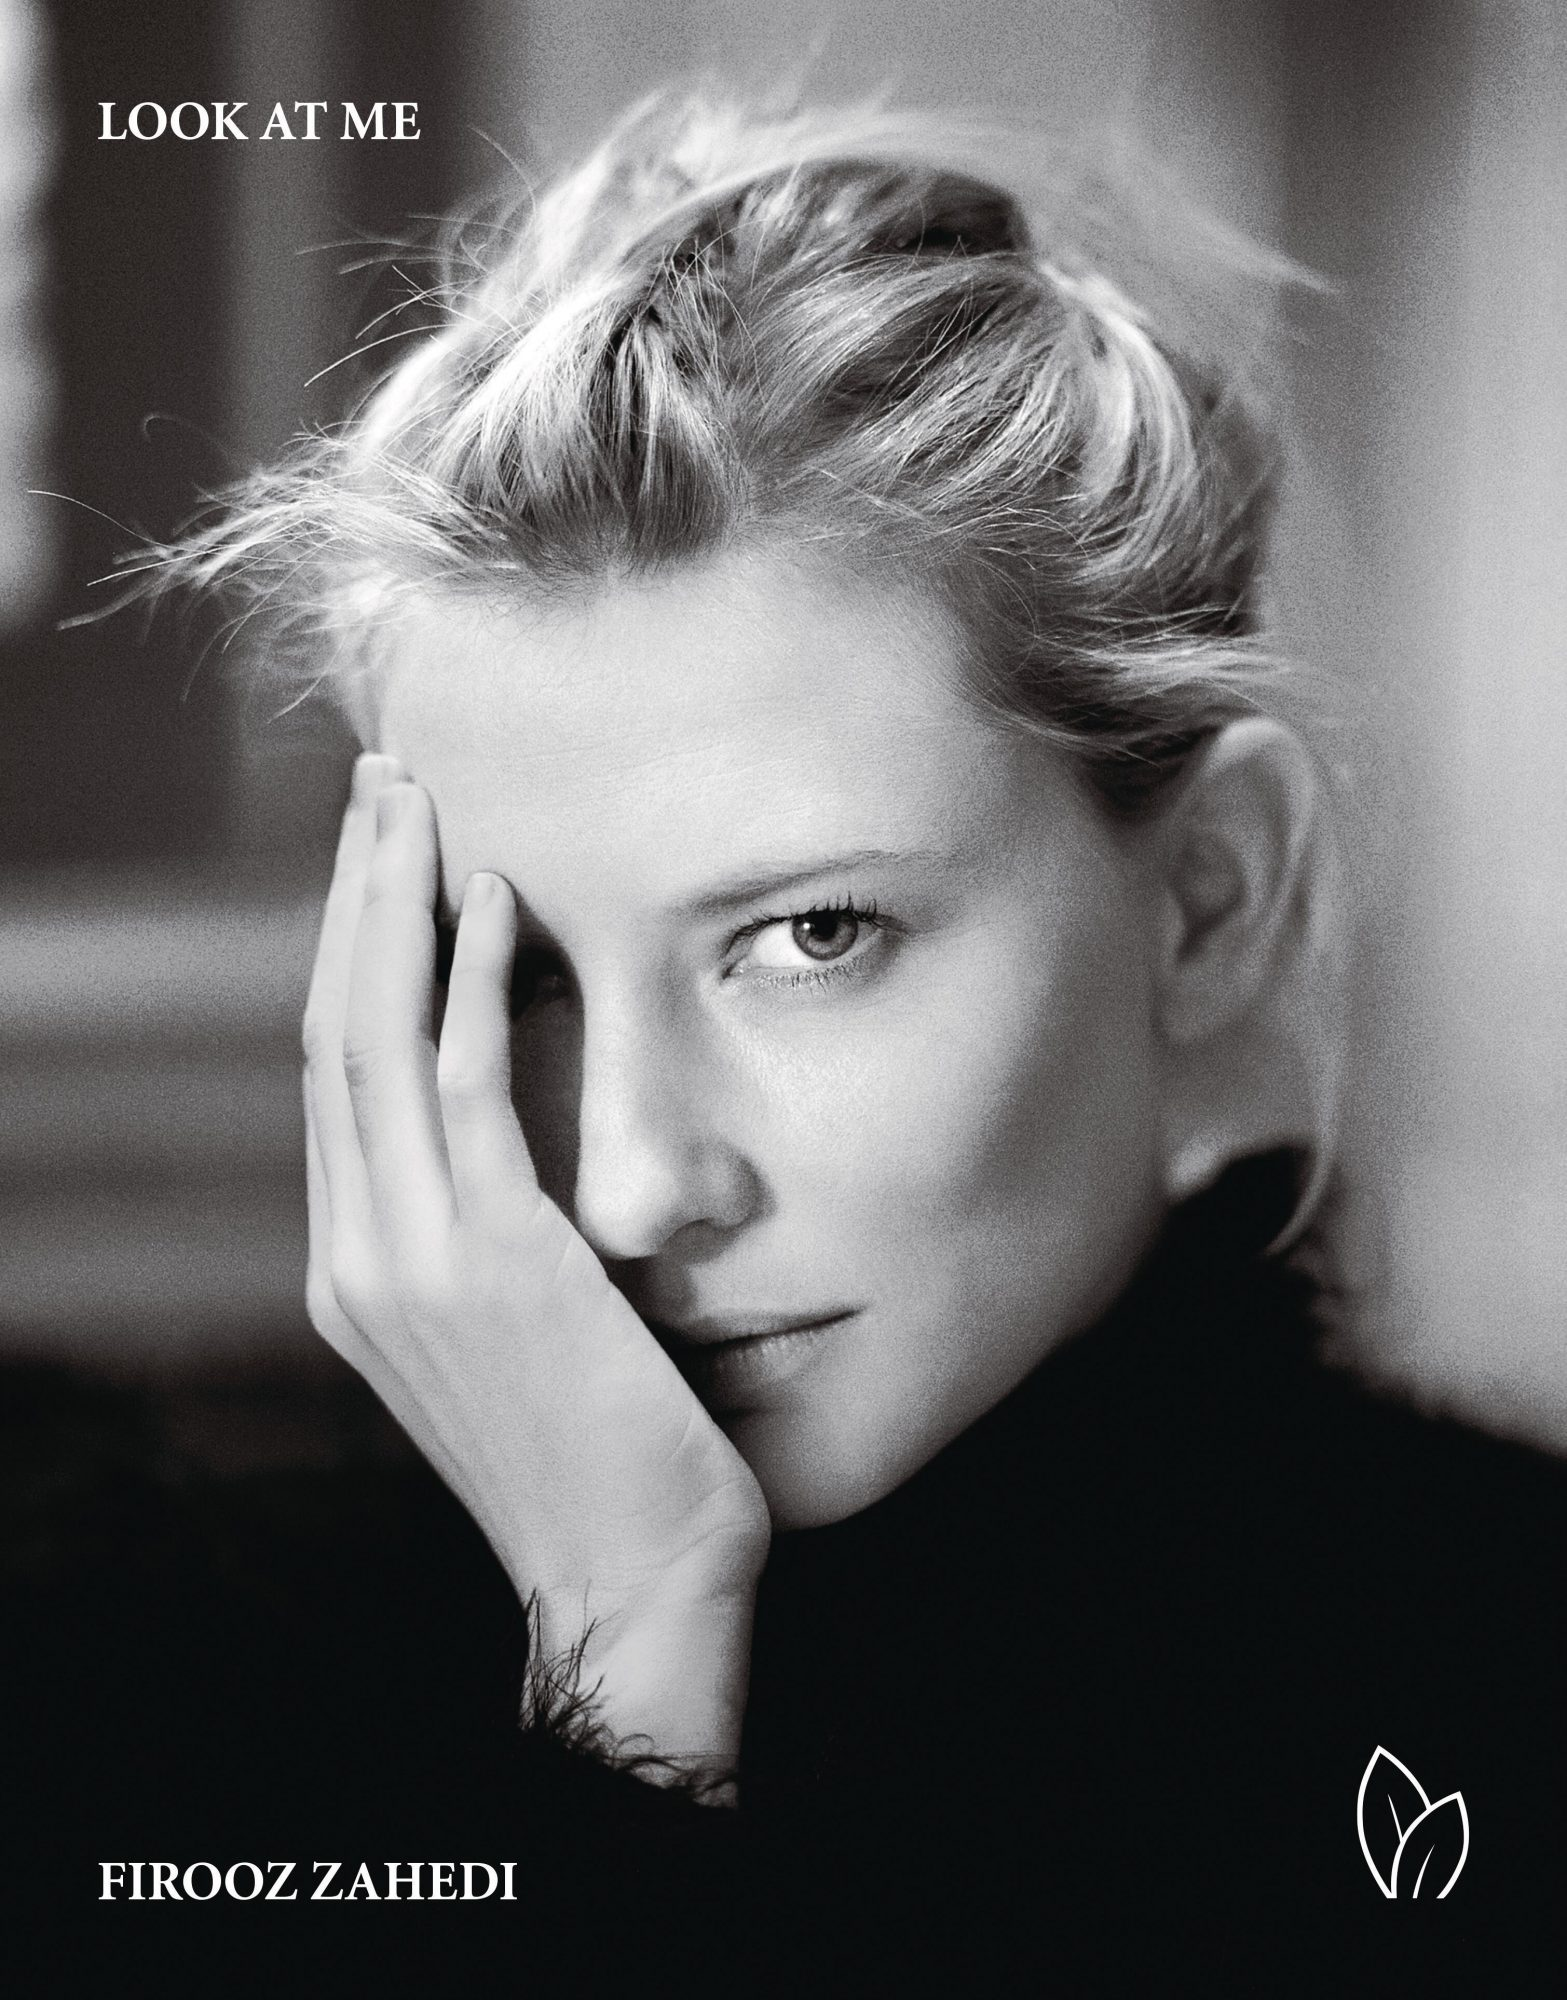 Look at Me by Firooz Shahedi photo book - cate blanchett